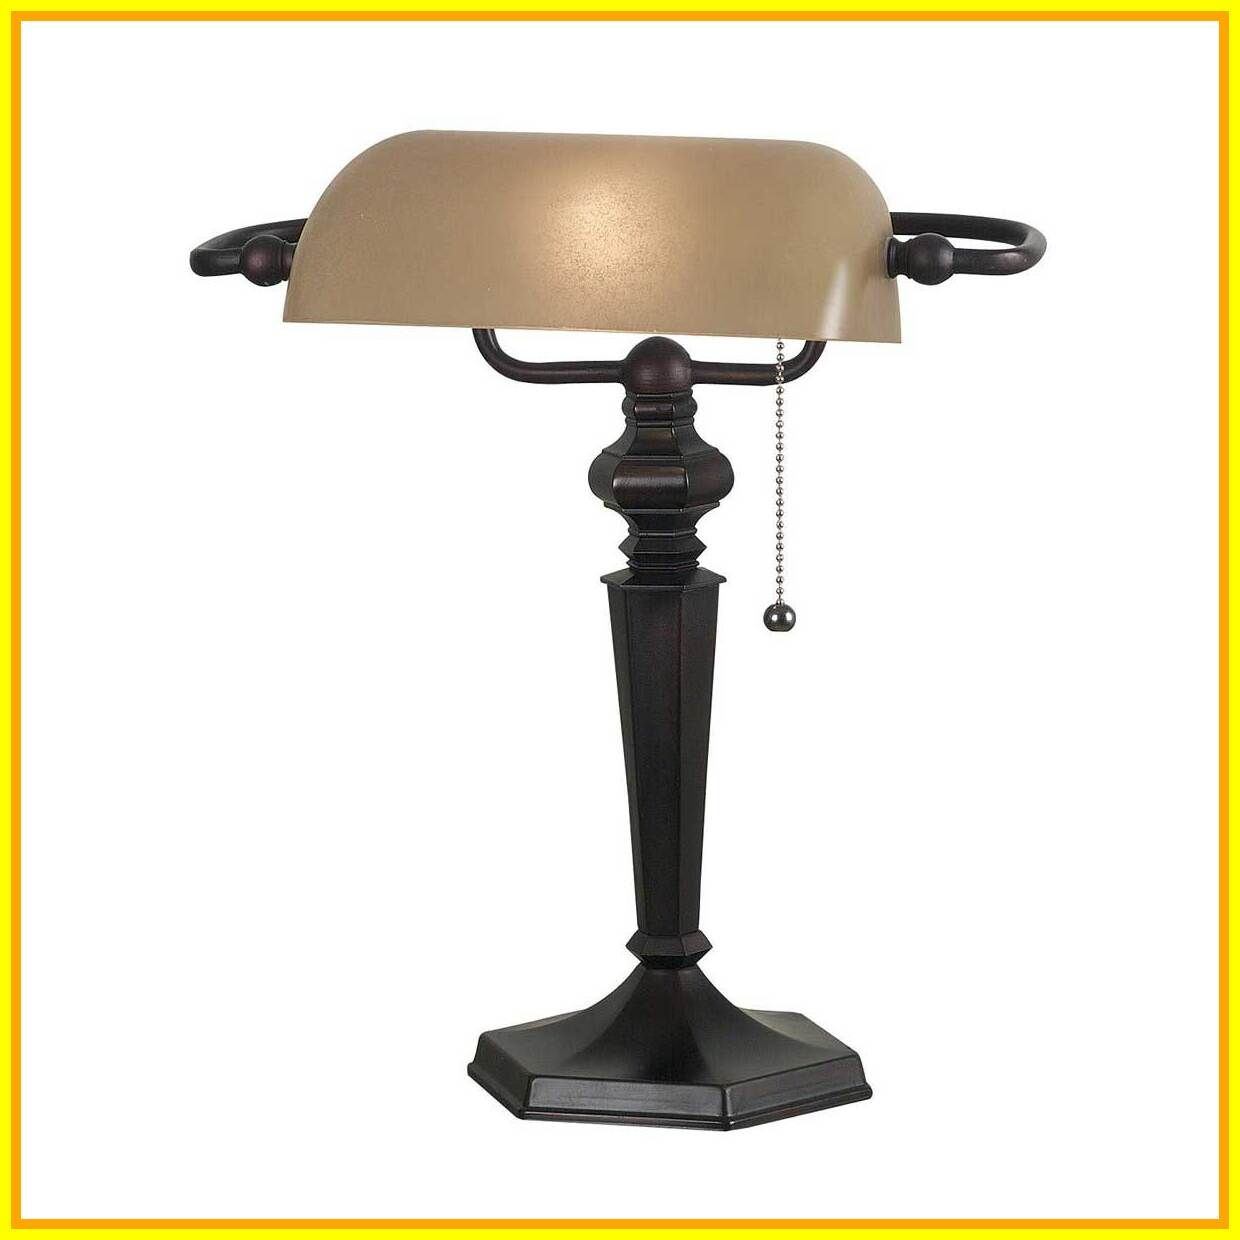 76 Reference Of Desk Lamps Office In 2020 Office Desk Designs Home Office Furniture Desk Desk Lamps Living Room